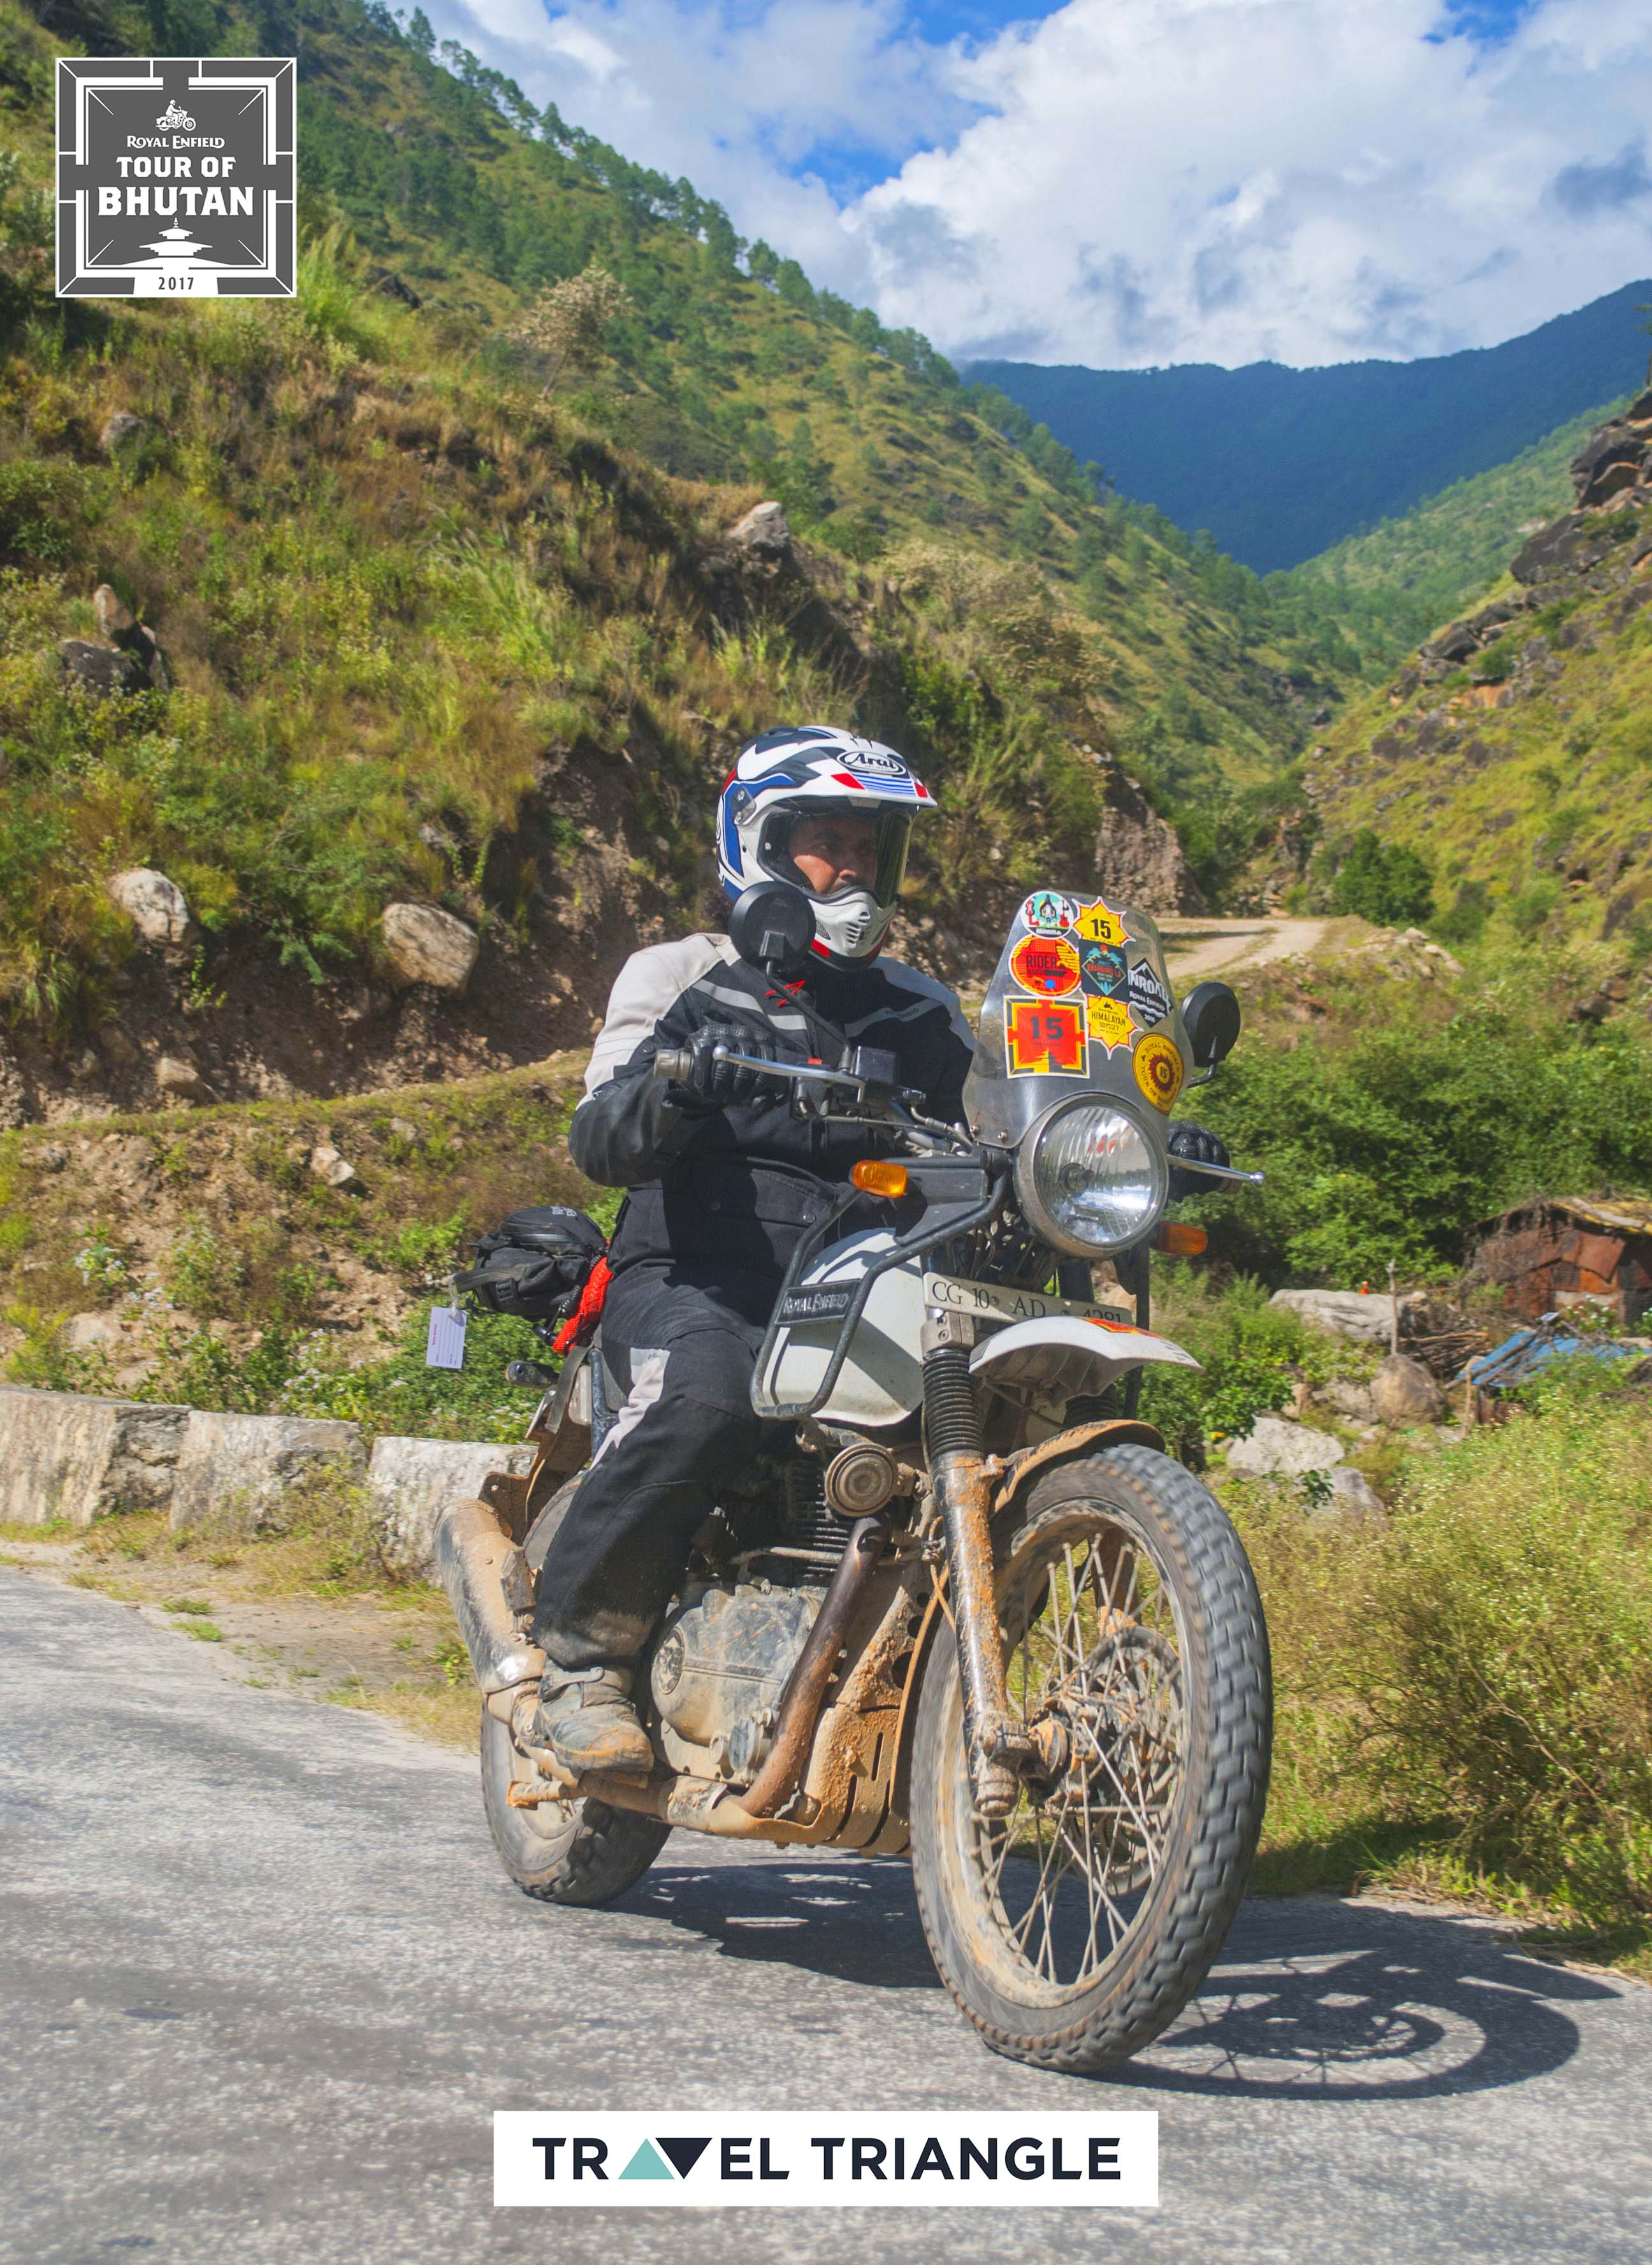 Mongar to Trashigang: a rider on his royal enfield